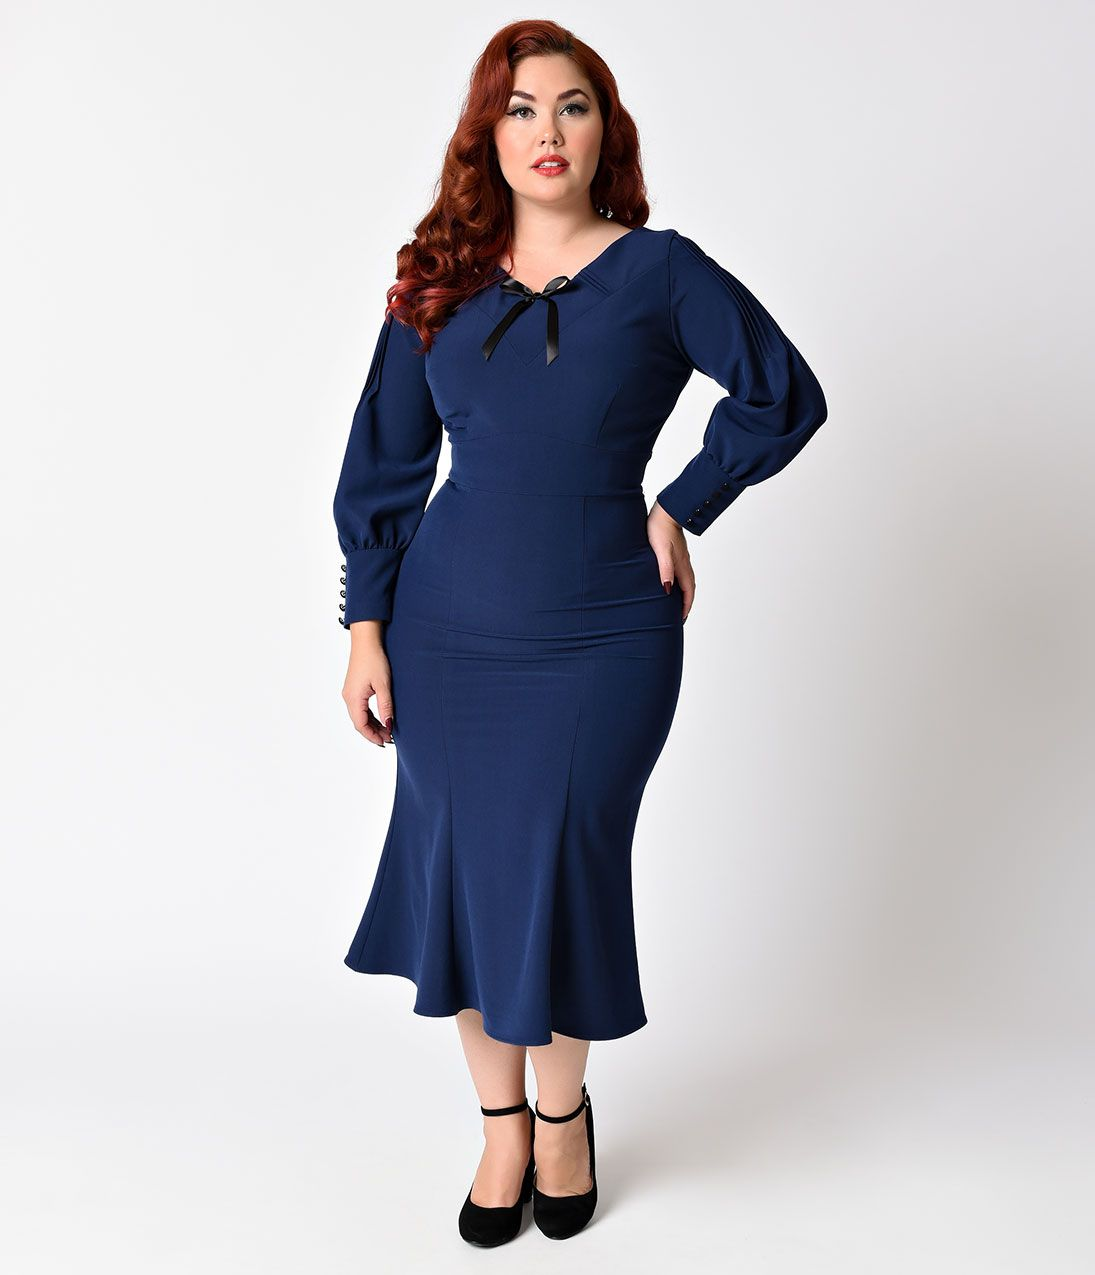 941ef980b9986 1930s Plus Size Dresses Stop Staring Plus Size 1930s Style Navy Blue Knit Long  Sleeve Wiggle Dress Size 3XL18 $184.00 AT vintagedancer.com